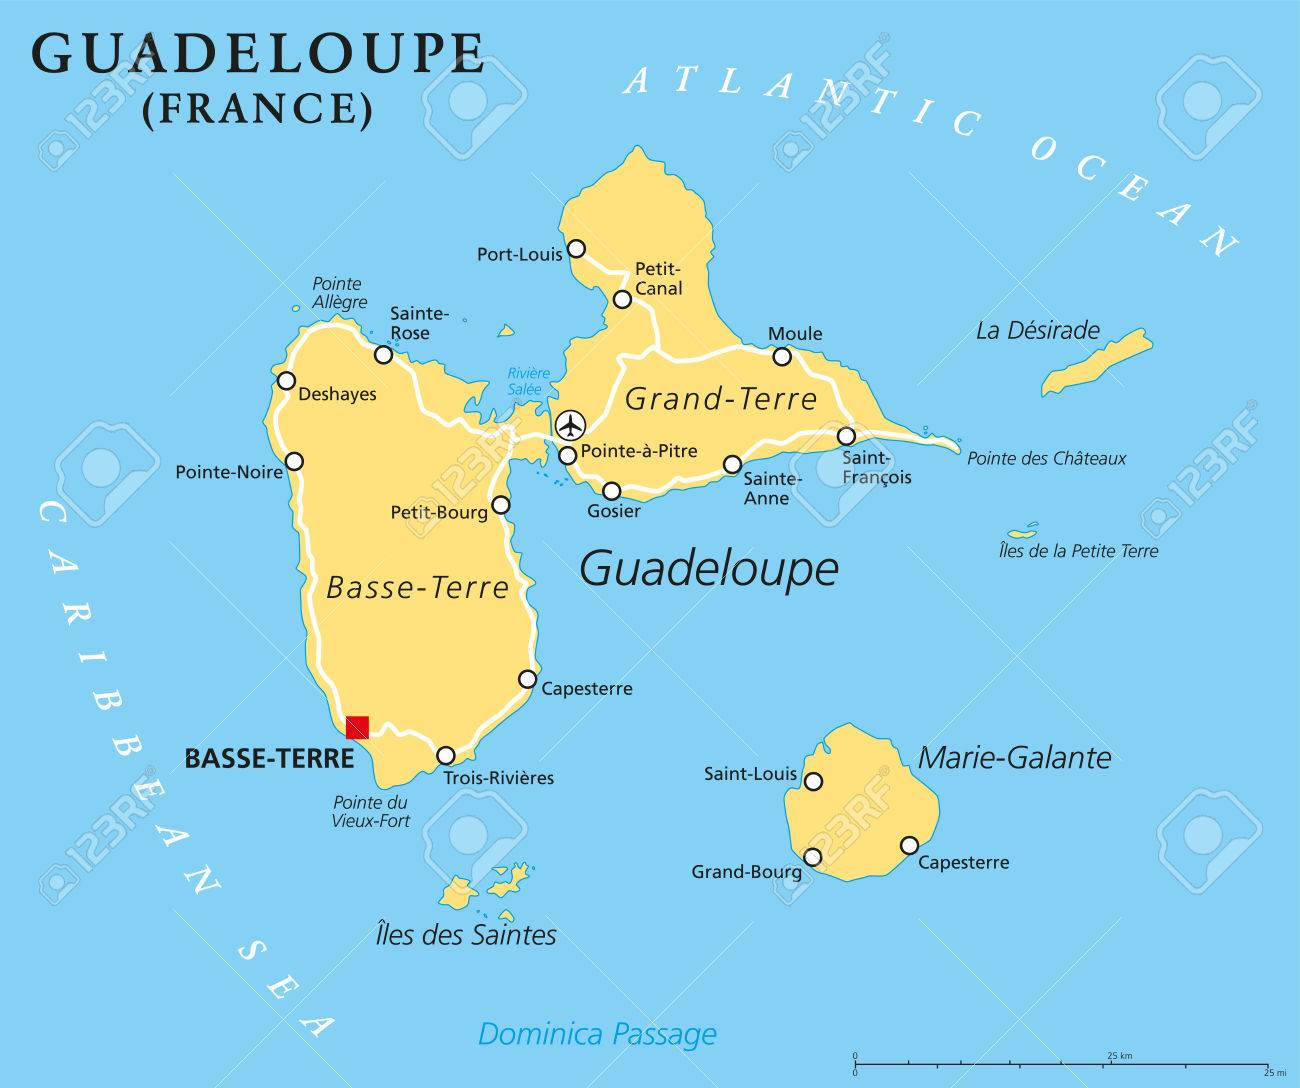 Capital Of France Map.Guadeloupe Political Map With Capital Basseterre An Overseas